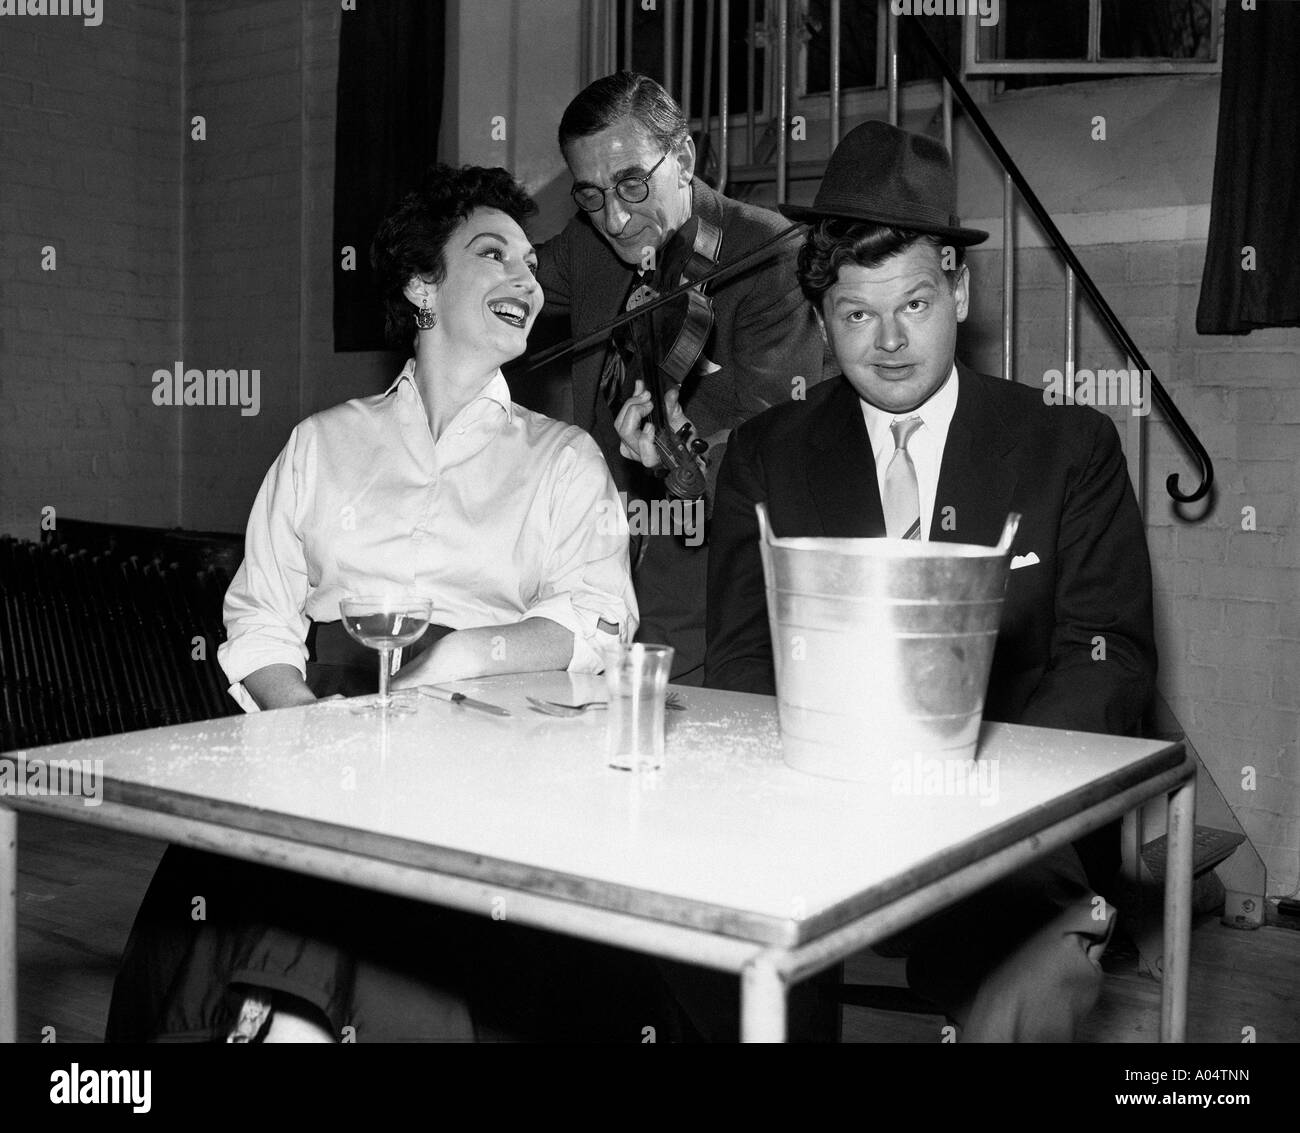 BENNY HILL UK comedian in December 1967 rehearsing with actress Olga Lowe for a TV show Stock Photo